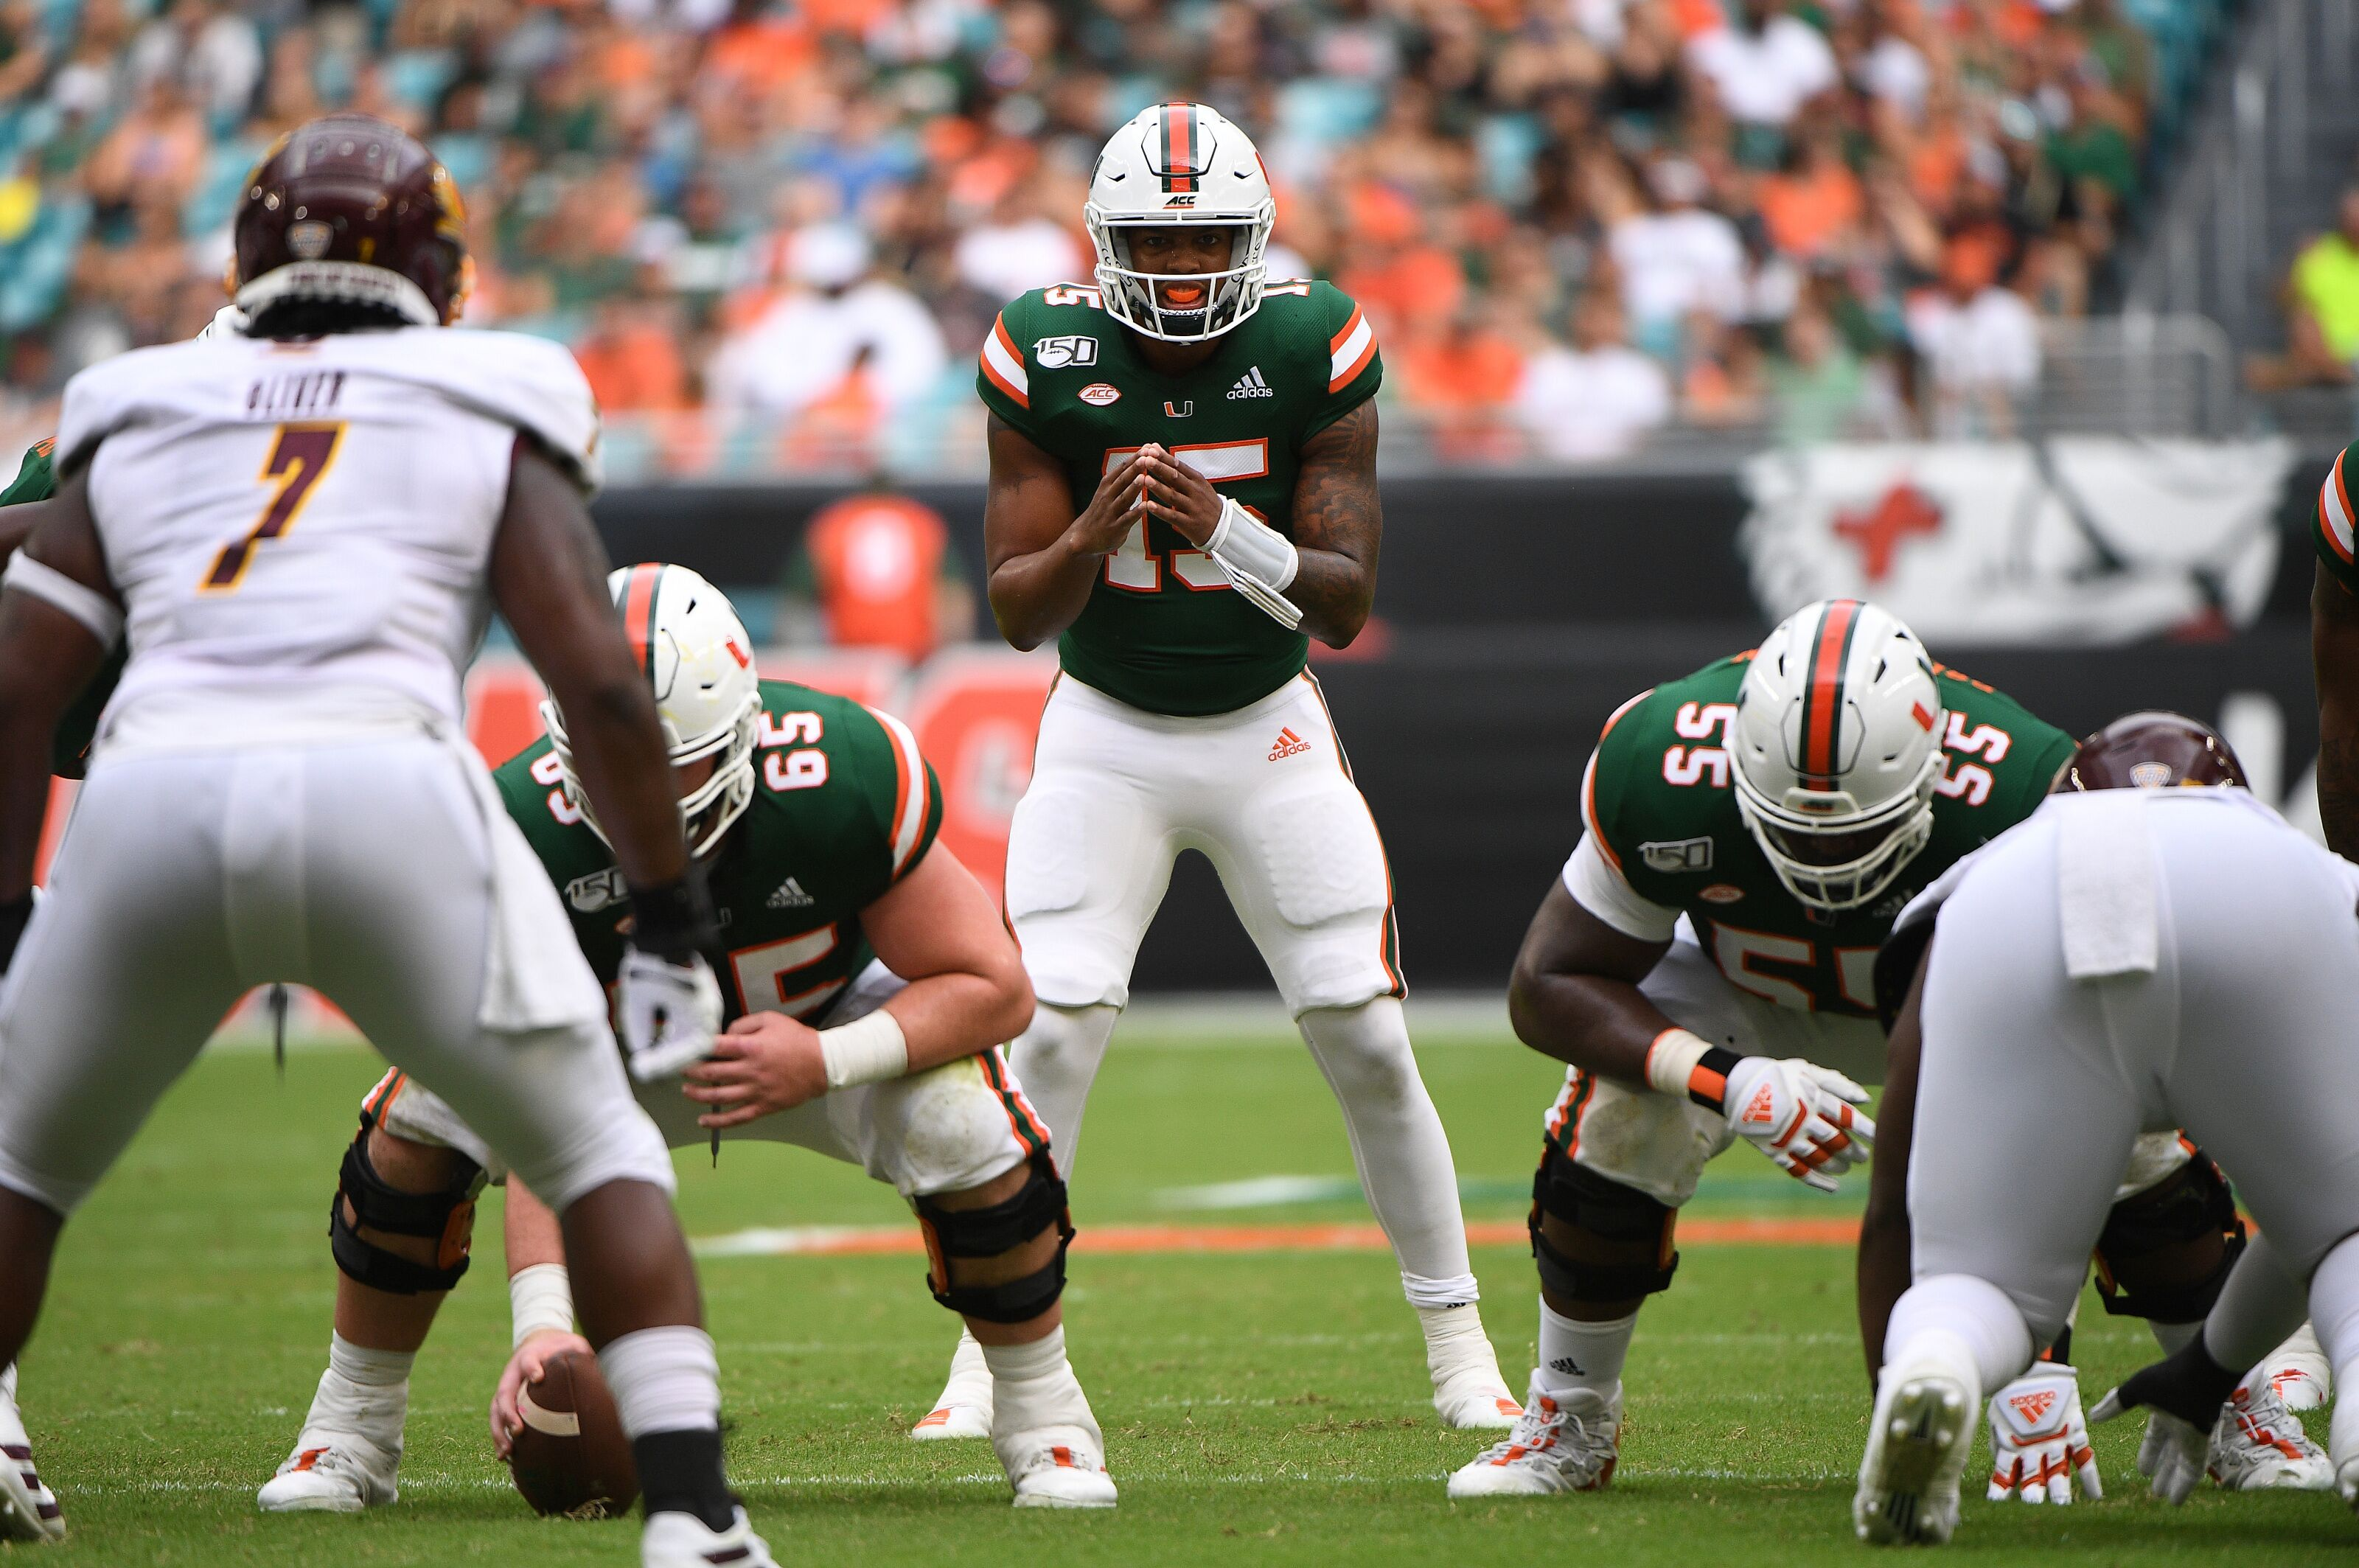 Miami football continually hindered by penalties and poor offensive line play